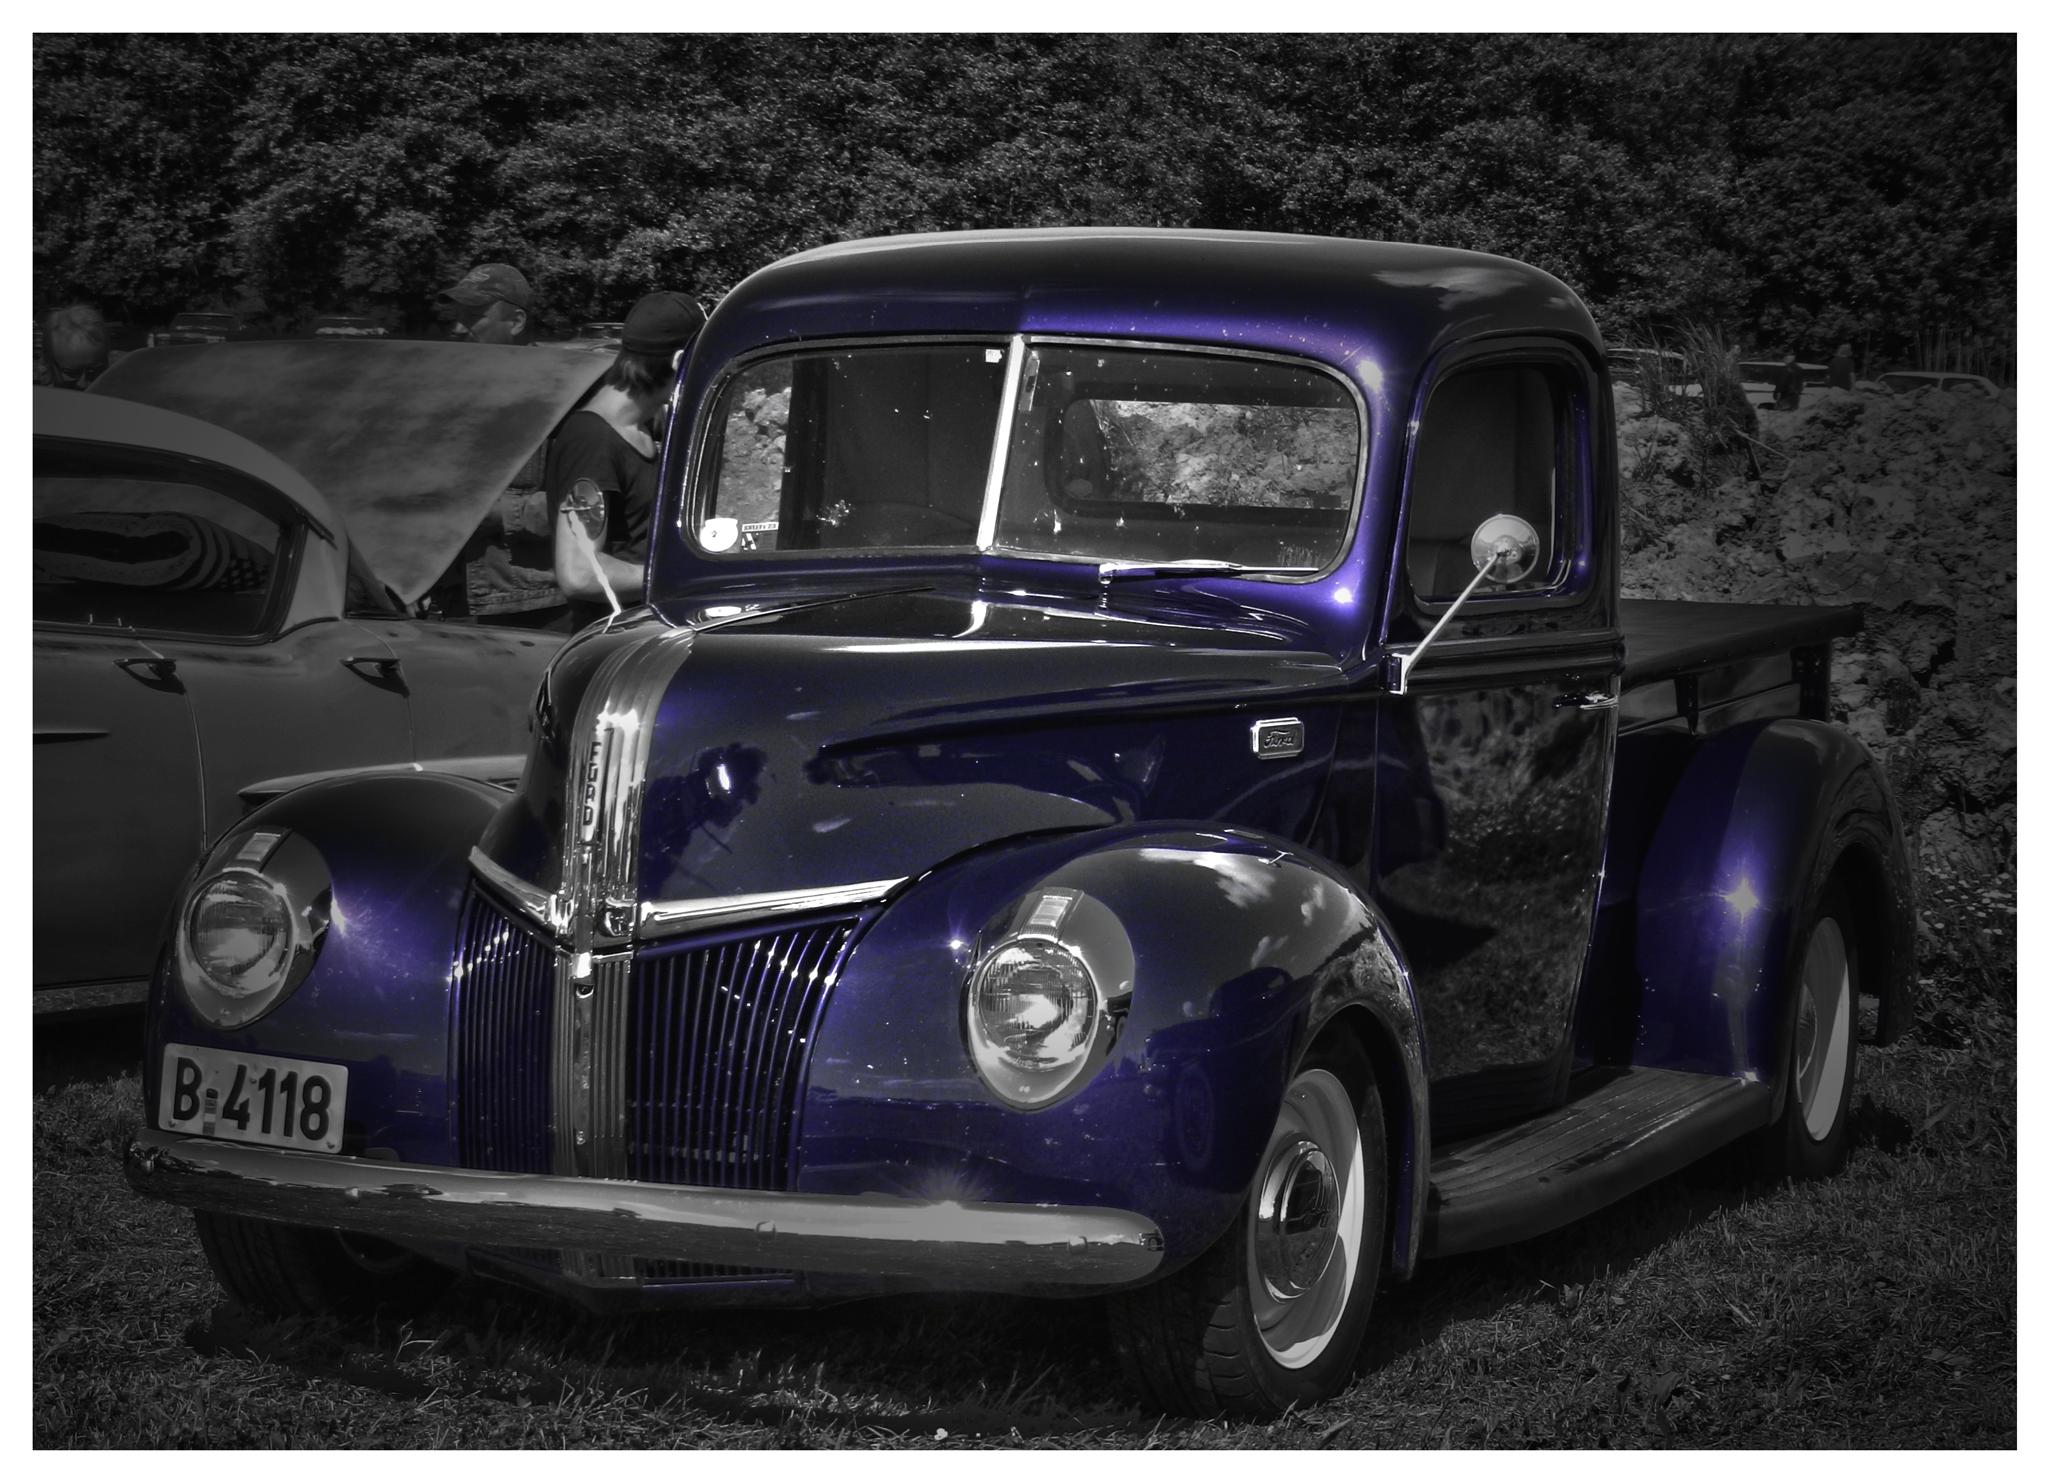 Selective color Fooord Pick-up by Linda Persson